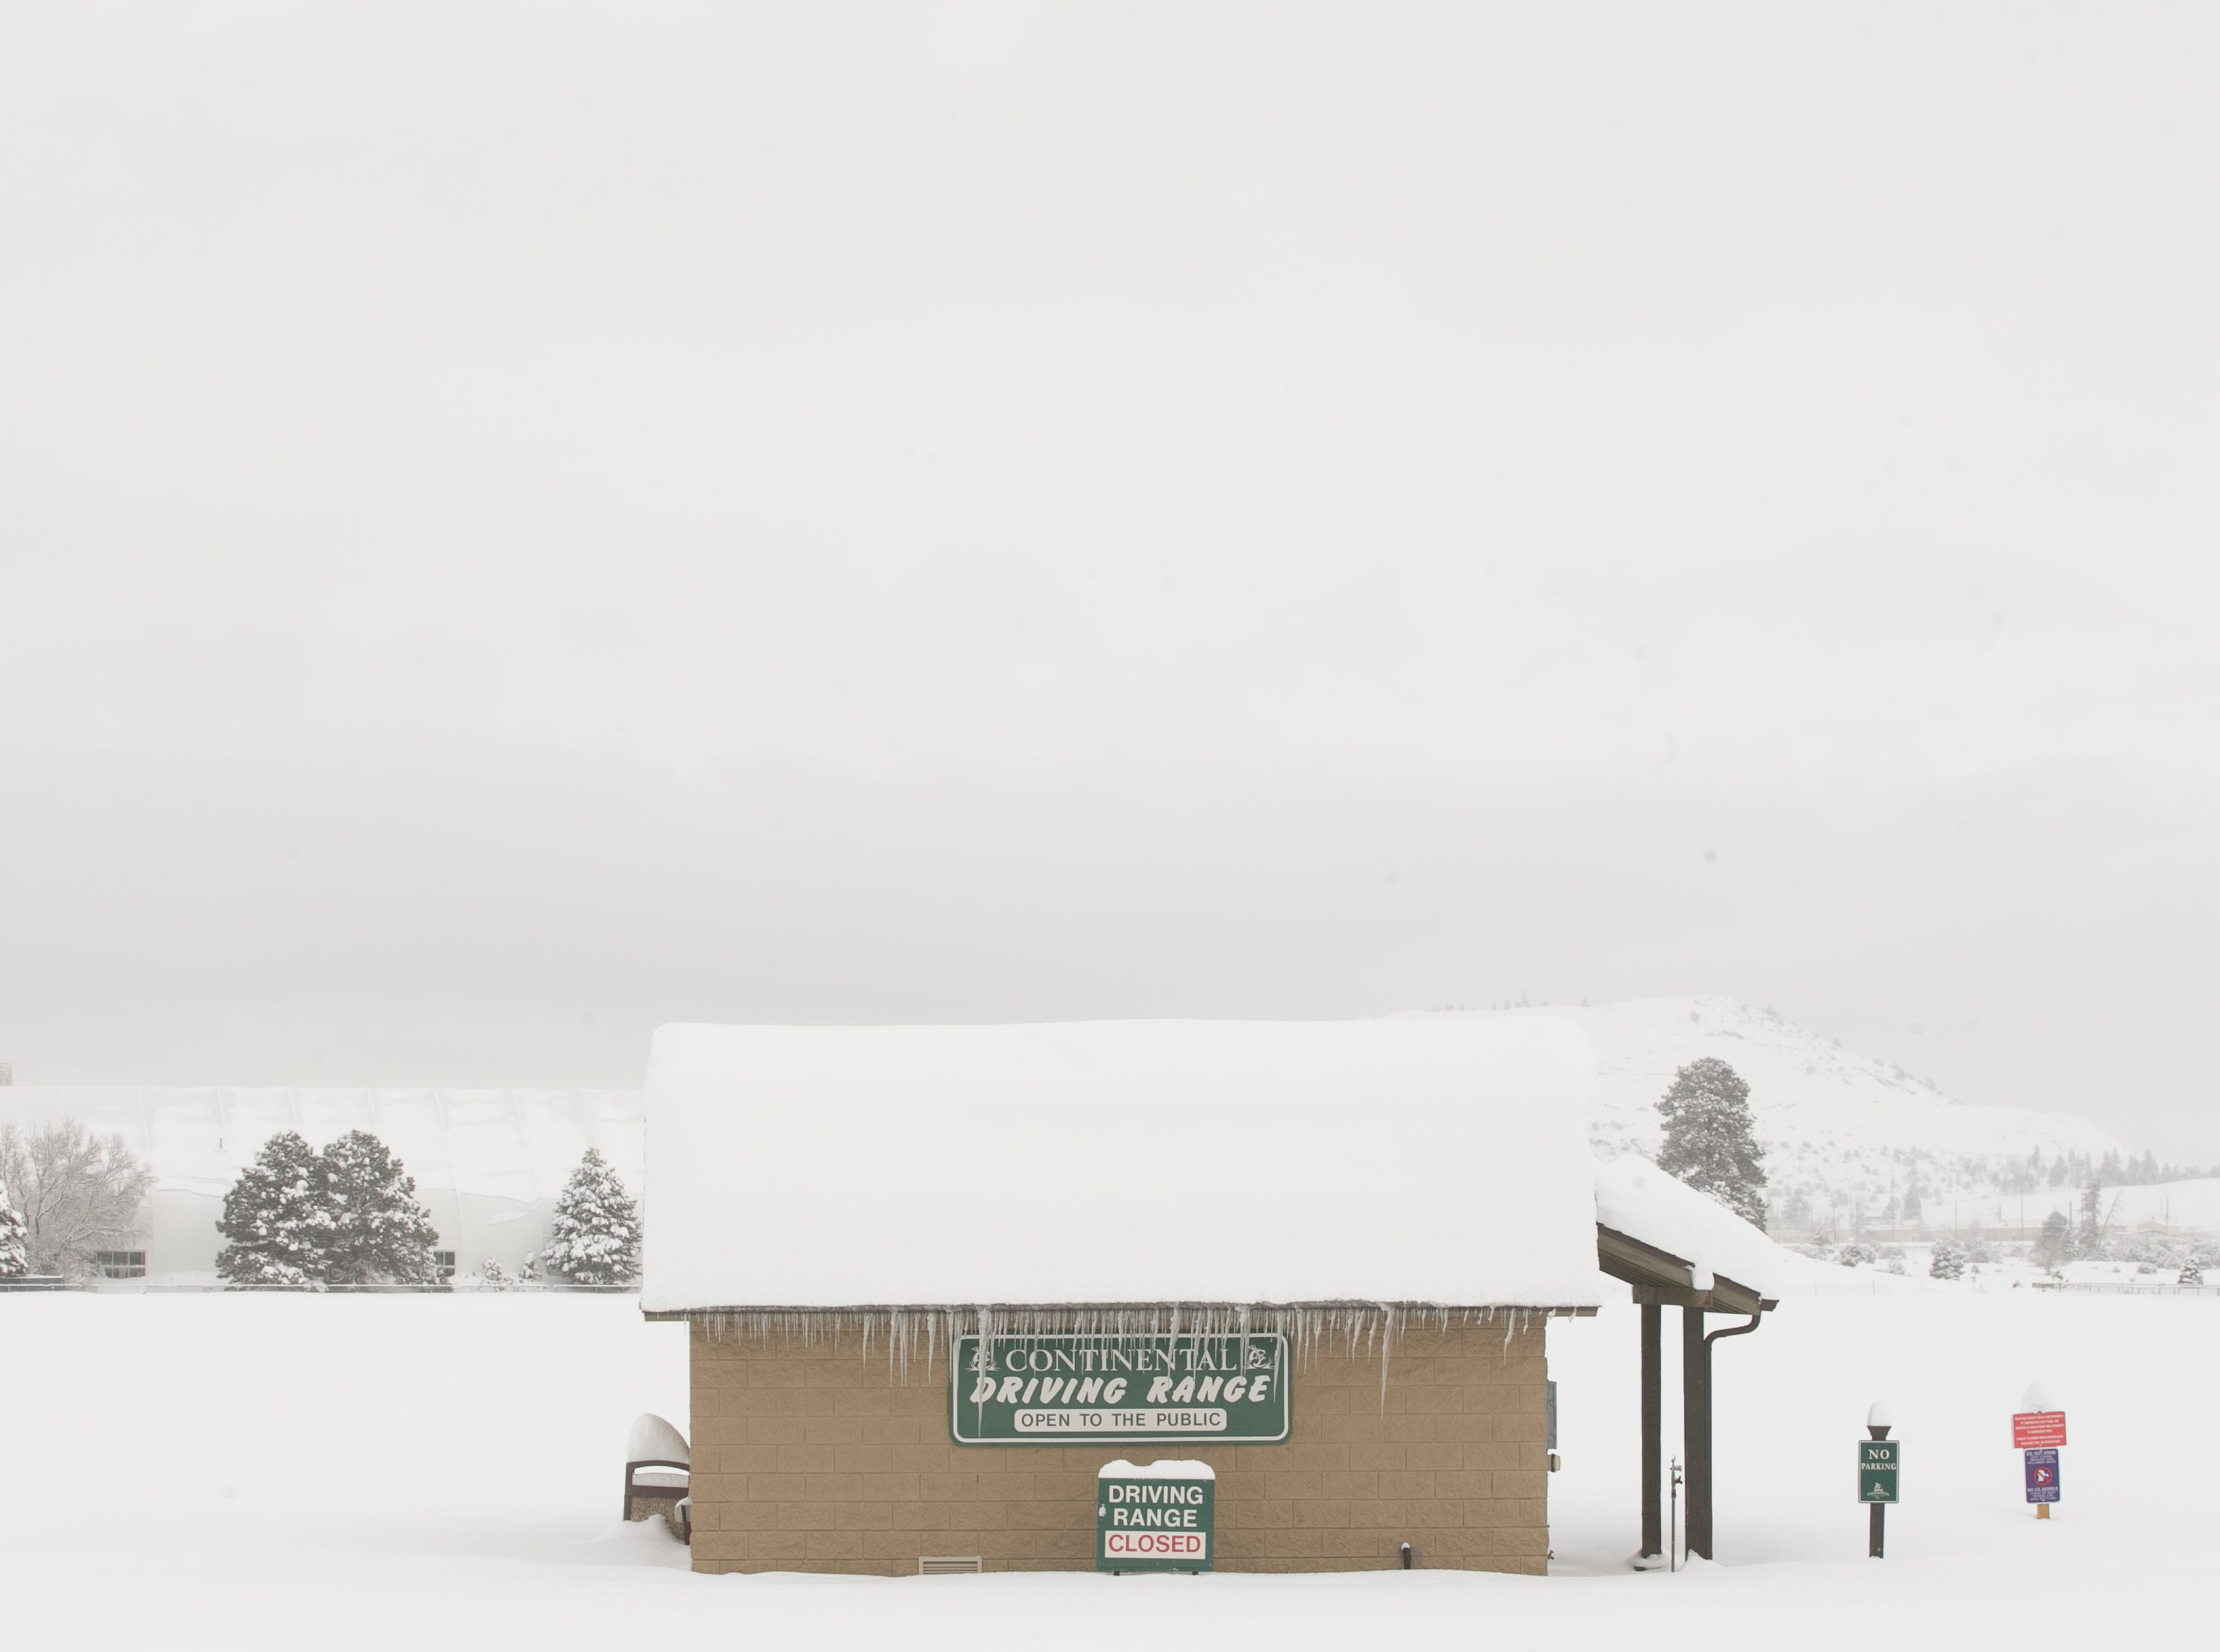 Snow covers a driving range at the Continental golf course the morning after a storm in Flagstaff on Feb. 22, 2019.